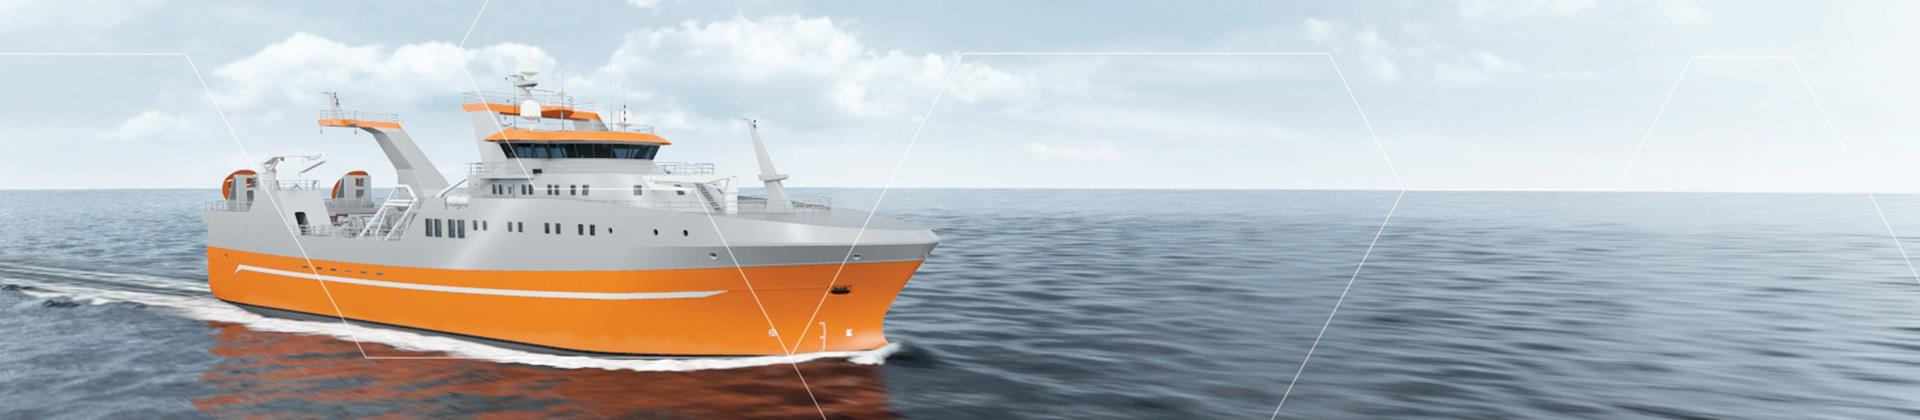 Wärtsilä Ship Design - innovative designs with a cost